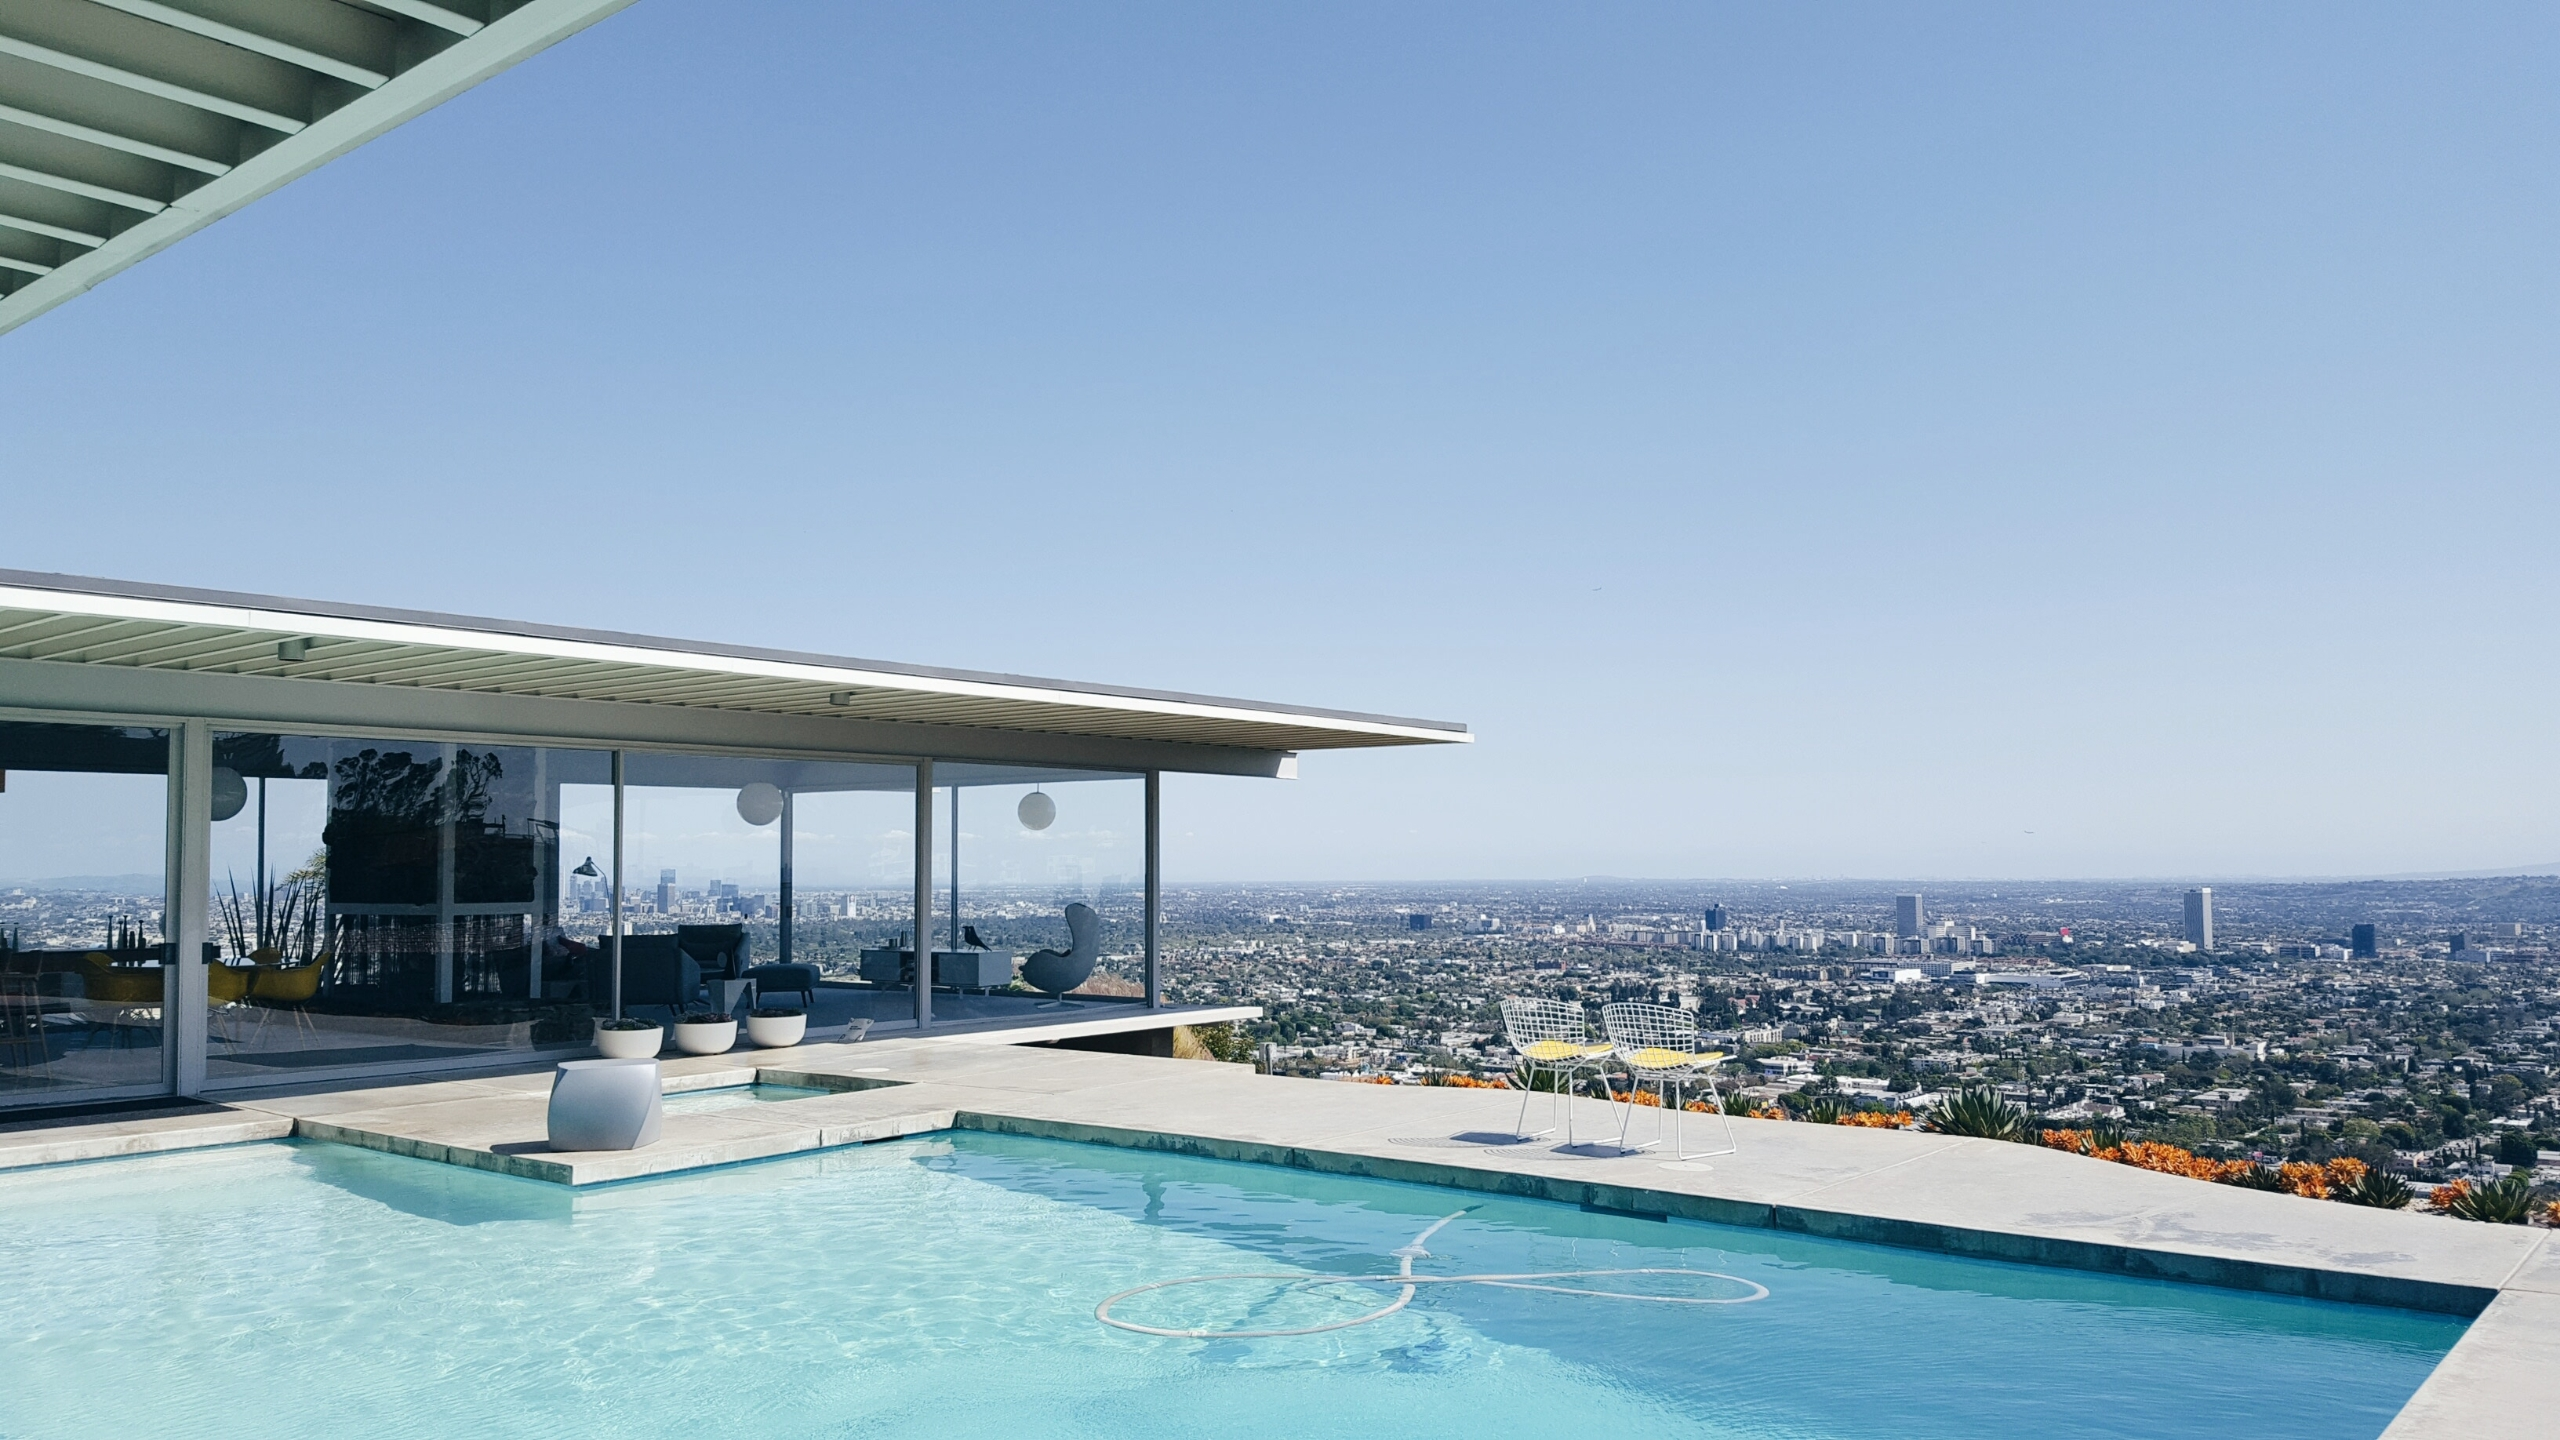 WeHo Real Estate Group (@wehorealestategroup) Cover Image